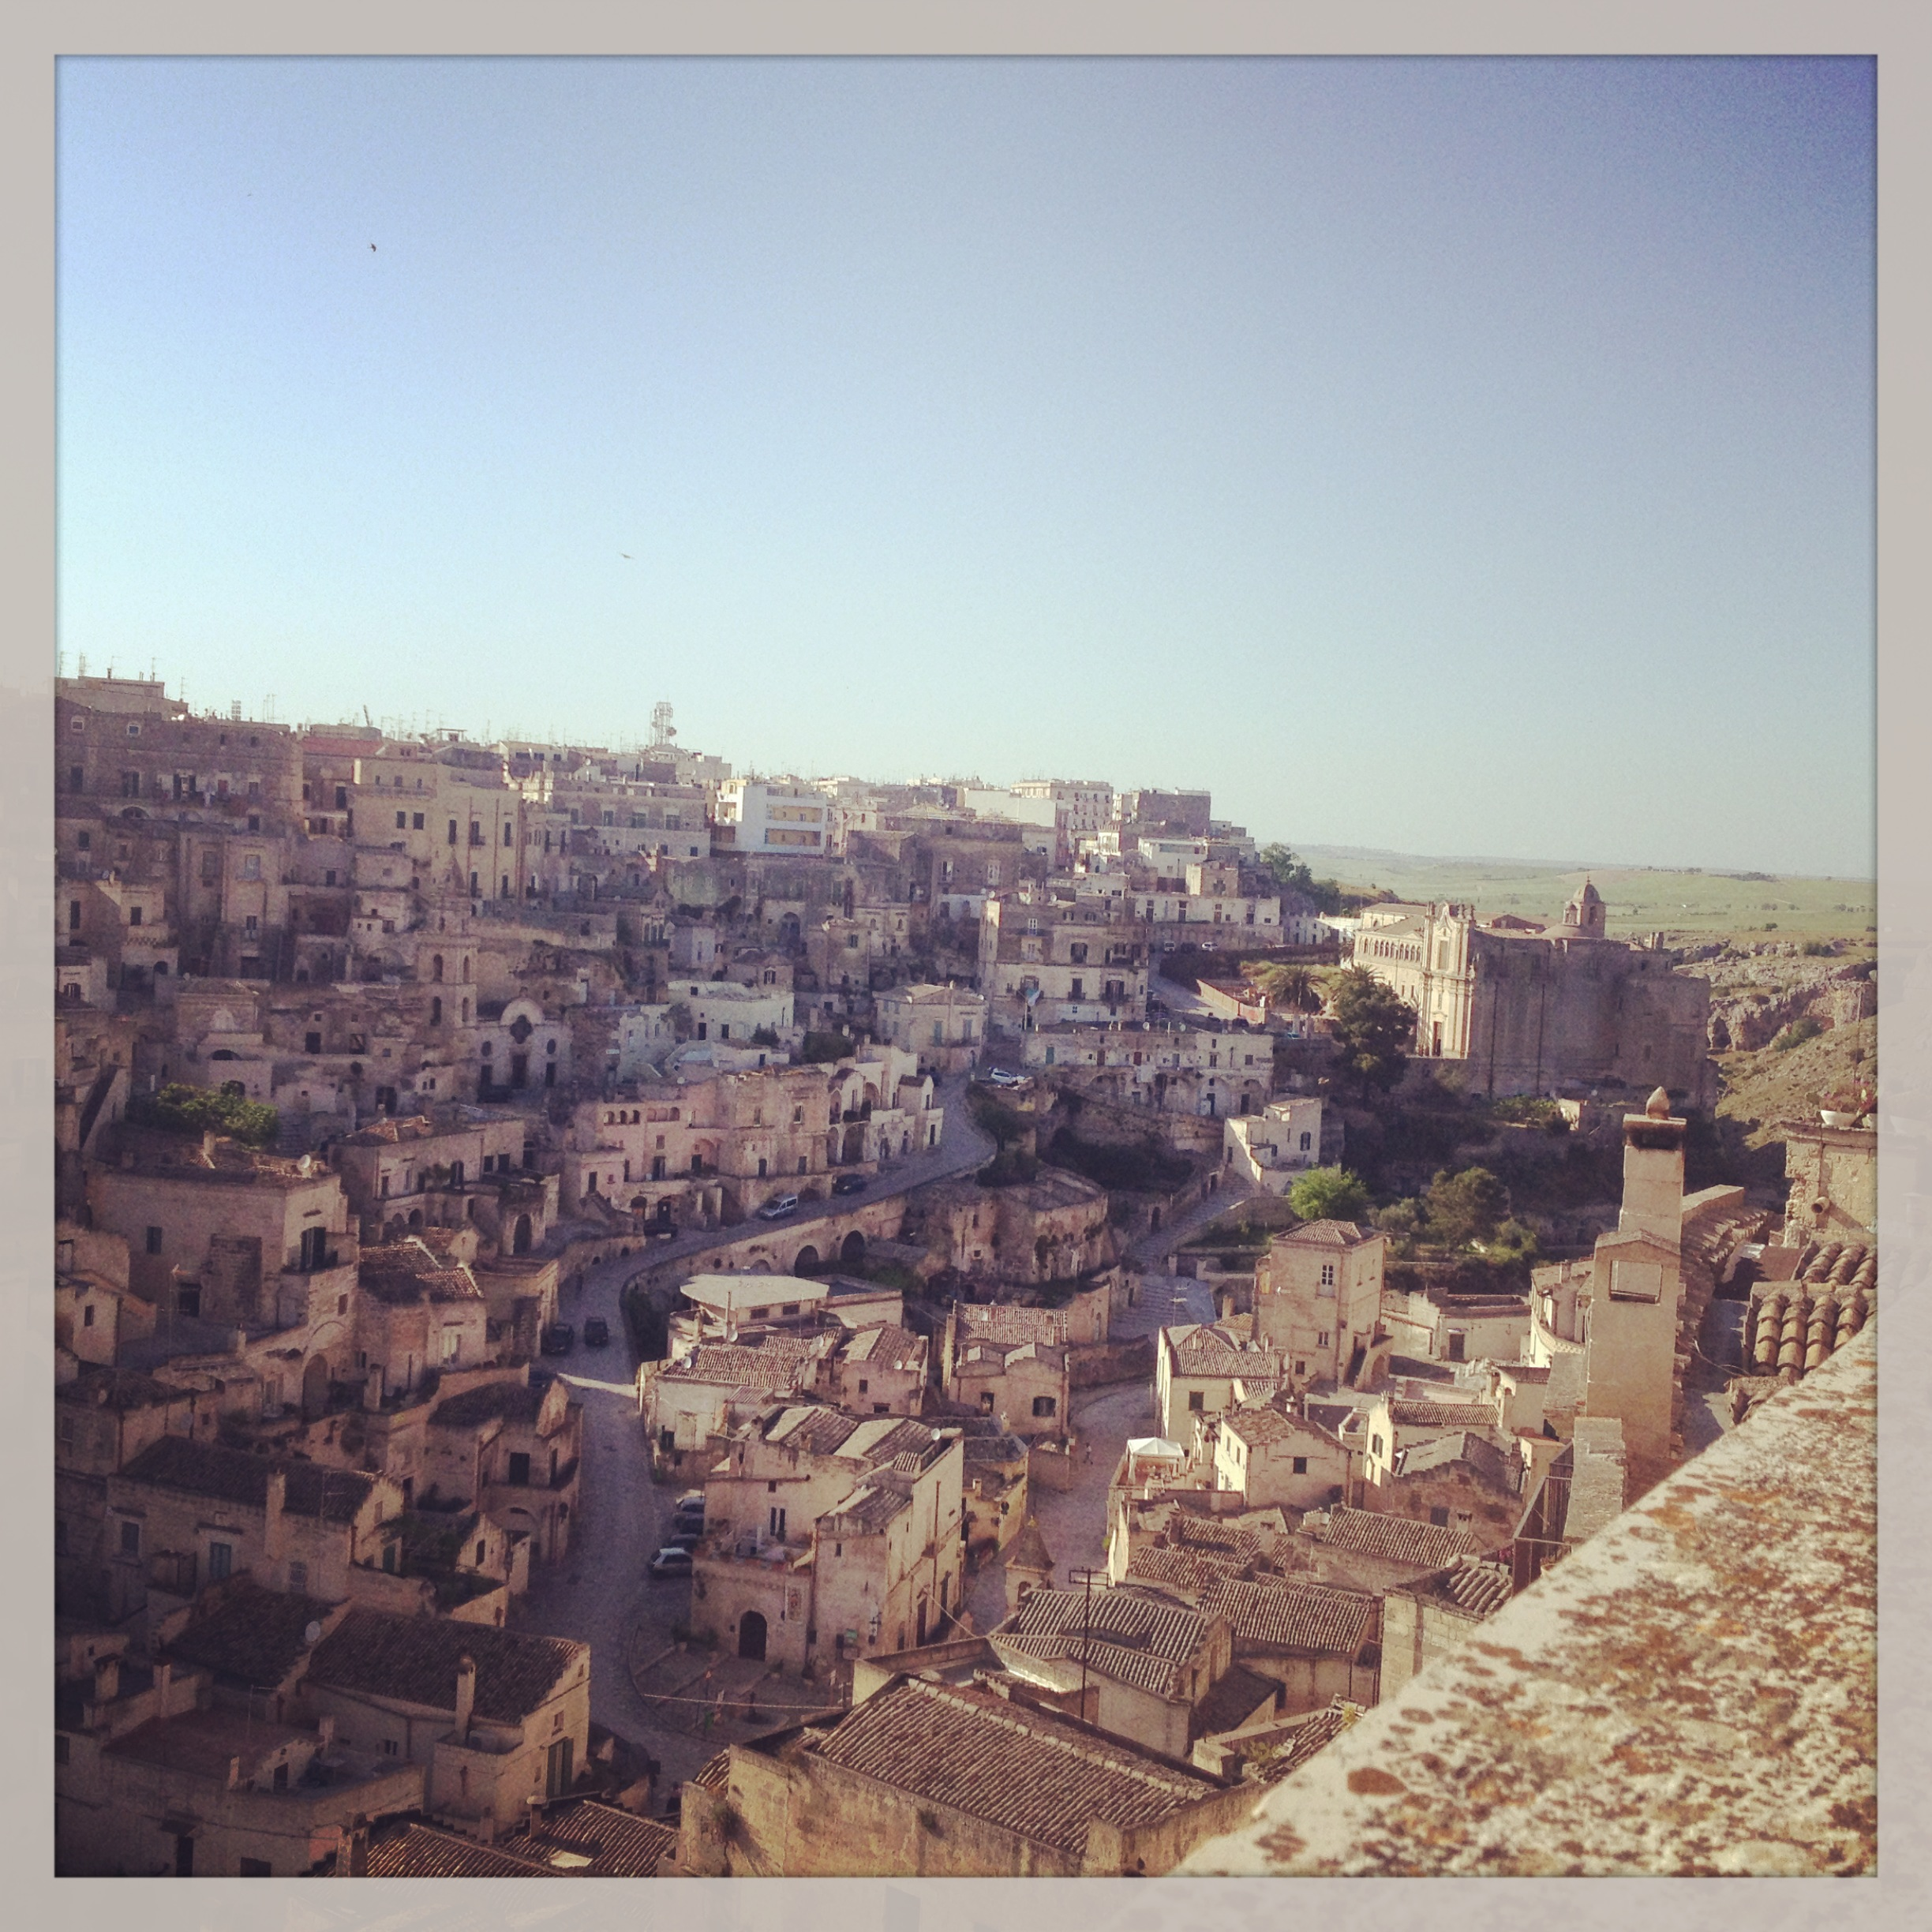 U-BOOT + NOMARE @CO-Living Matera